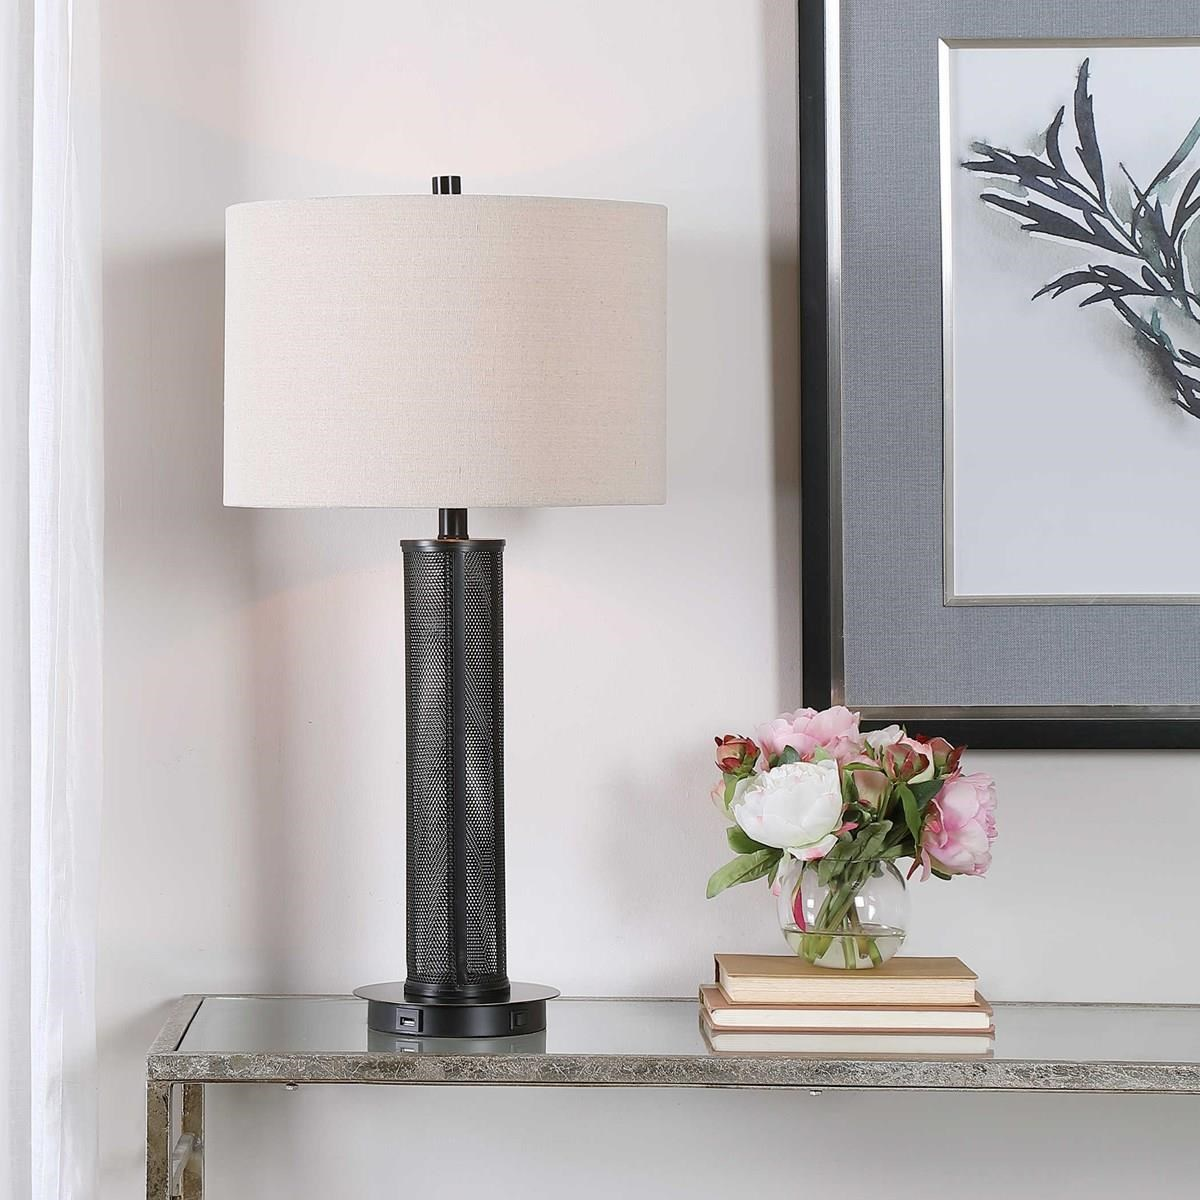 ELIZABETH TABLE LAMP